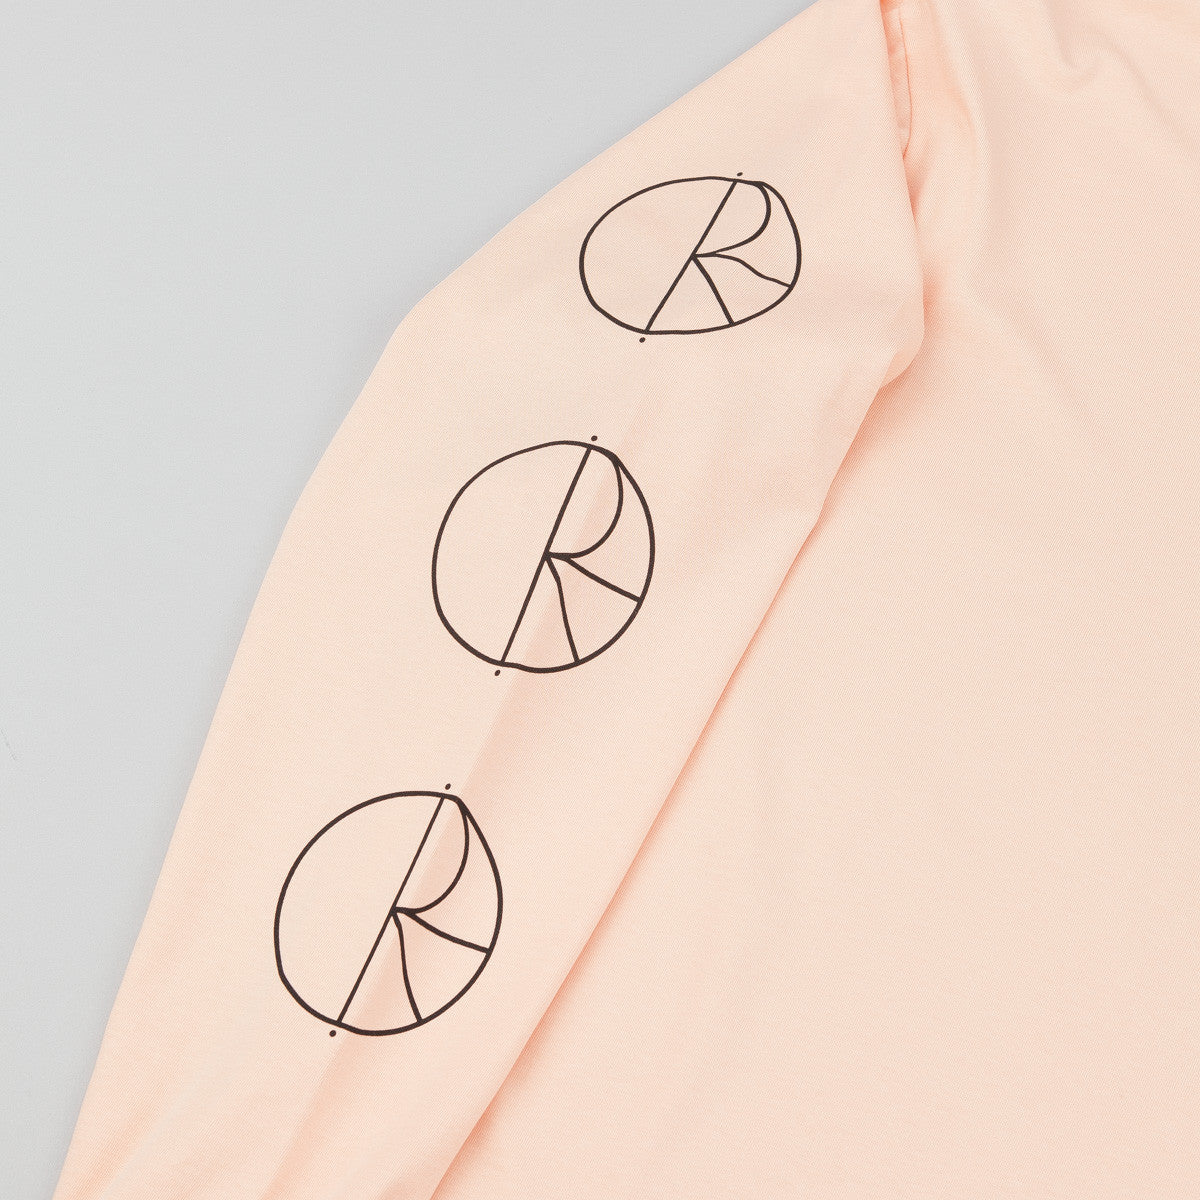 Polar Racing Longsleeve T-Shirt - Pastel Peach / Black / Black